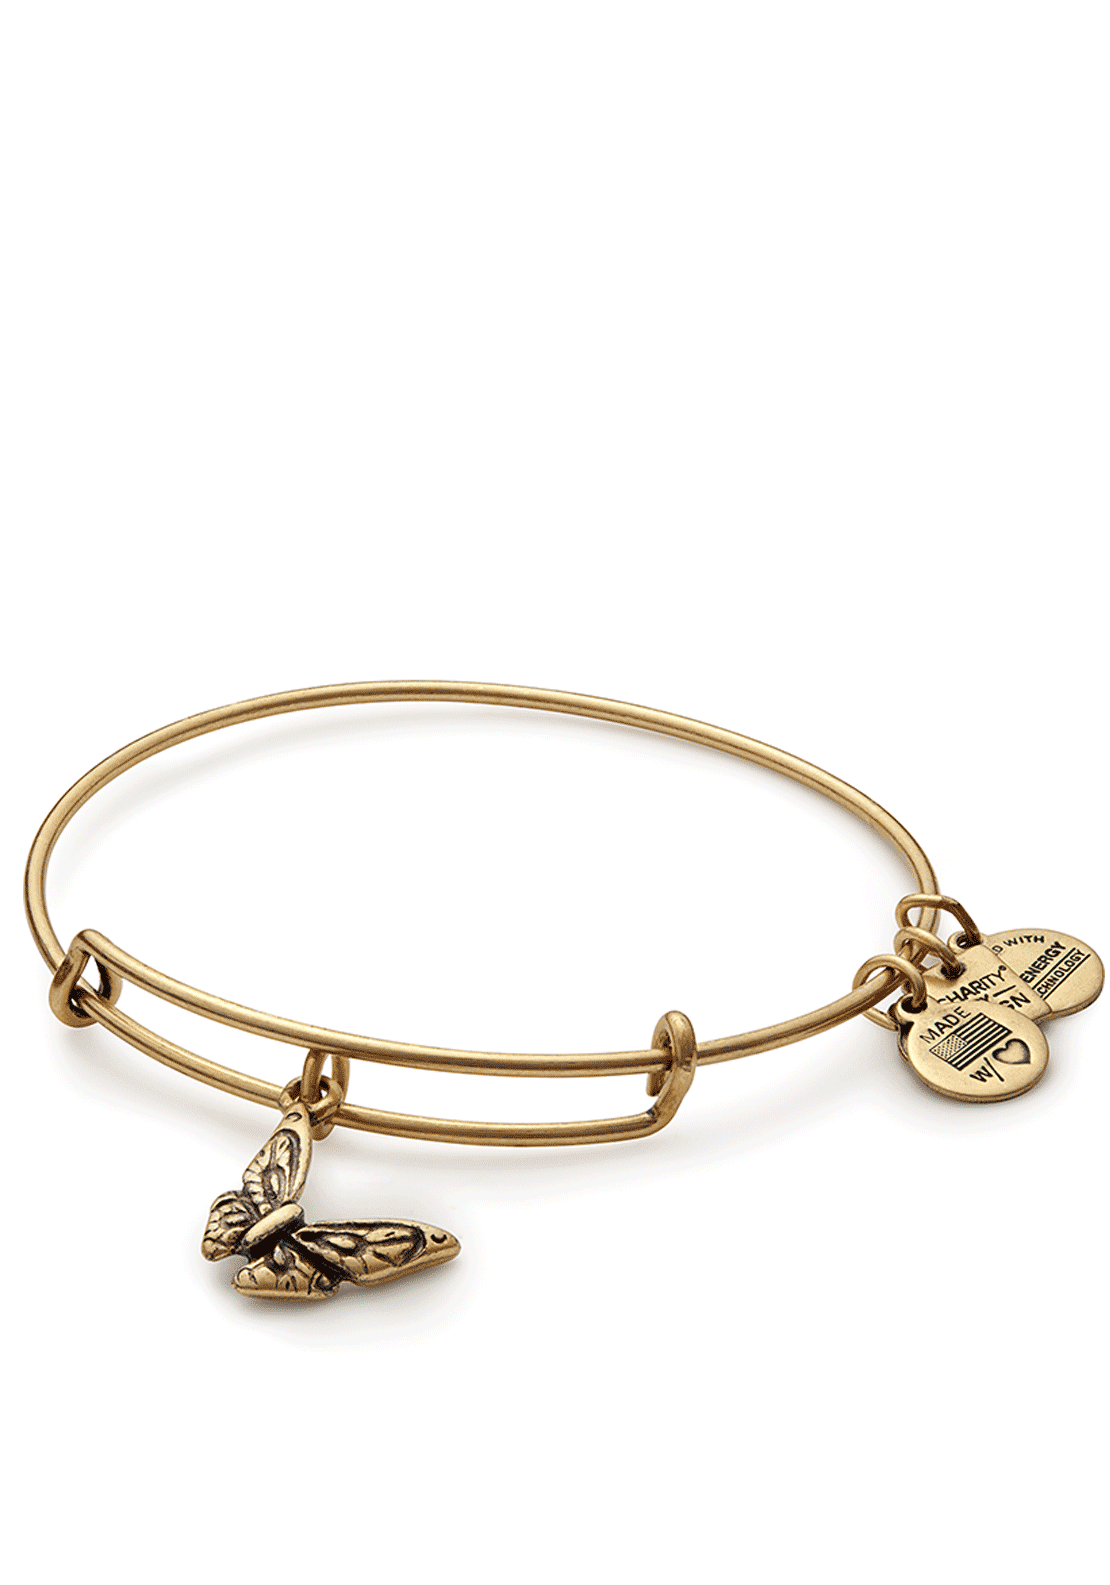 Alex and Ani Charity Butterfly Bracelet, Gold